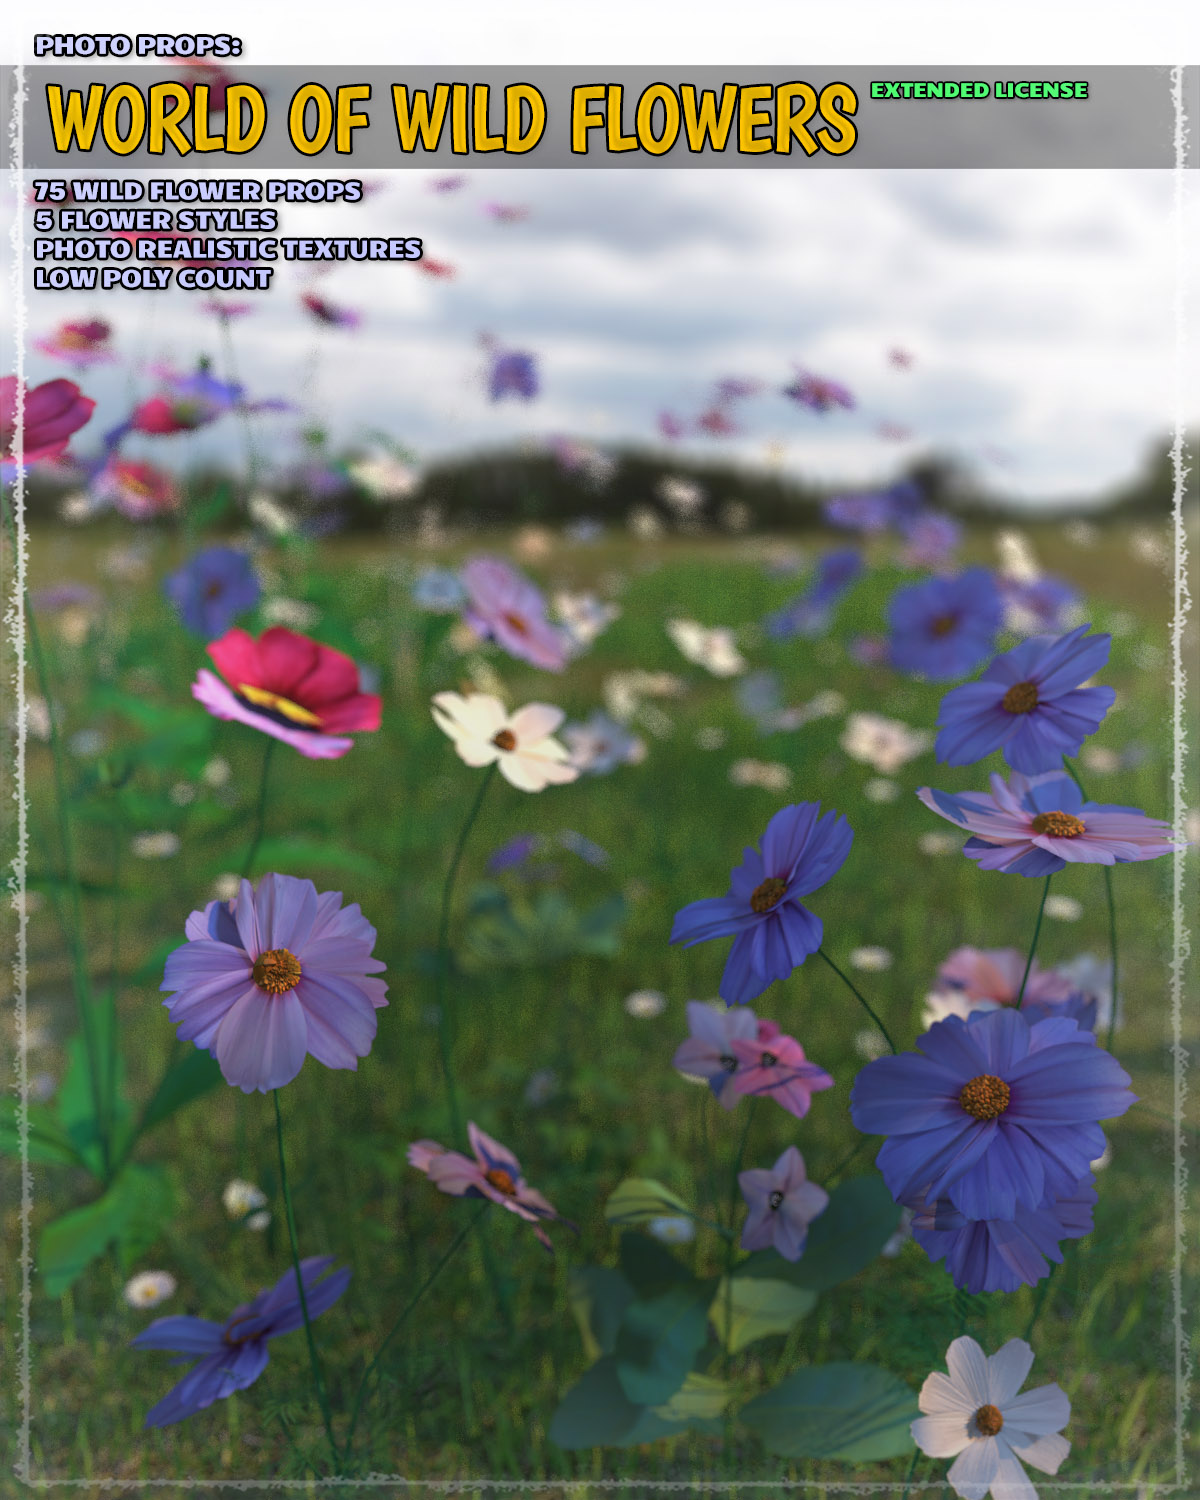 Photo Plants: World of Wildflowers - Extended License